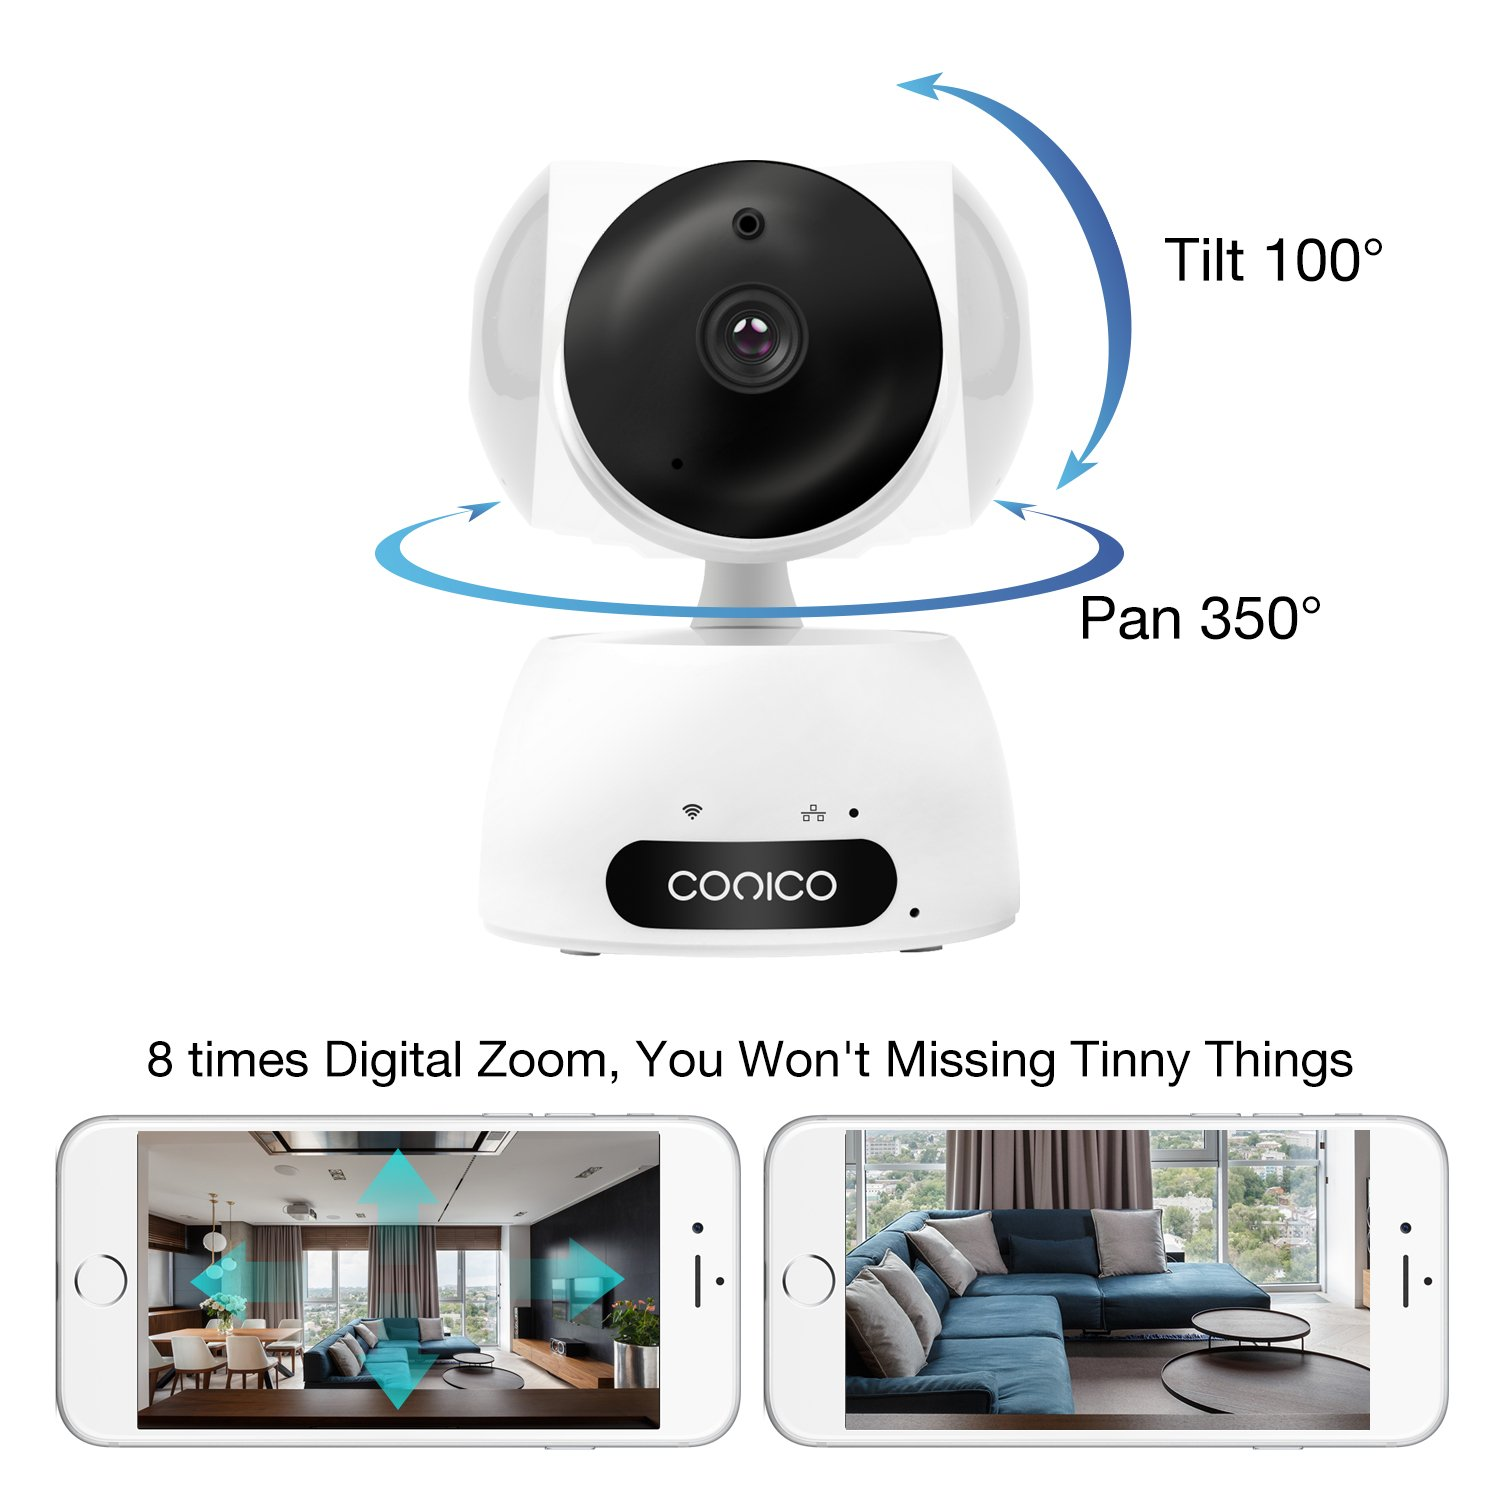 Video Baby Monitor, Conico 1080P Wireless WiFi Surveillance Camera Nanny Cam with Two Way Audio Night Vision Motion Detect Remote Viewing Pan Tilt Zoom for iPhone and Android by Conico (Image #4)